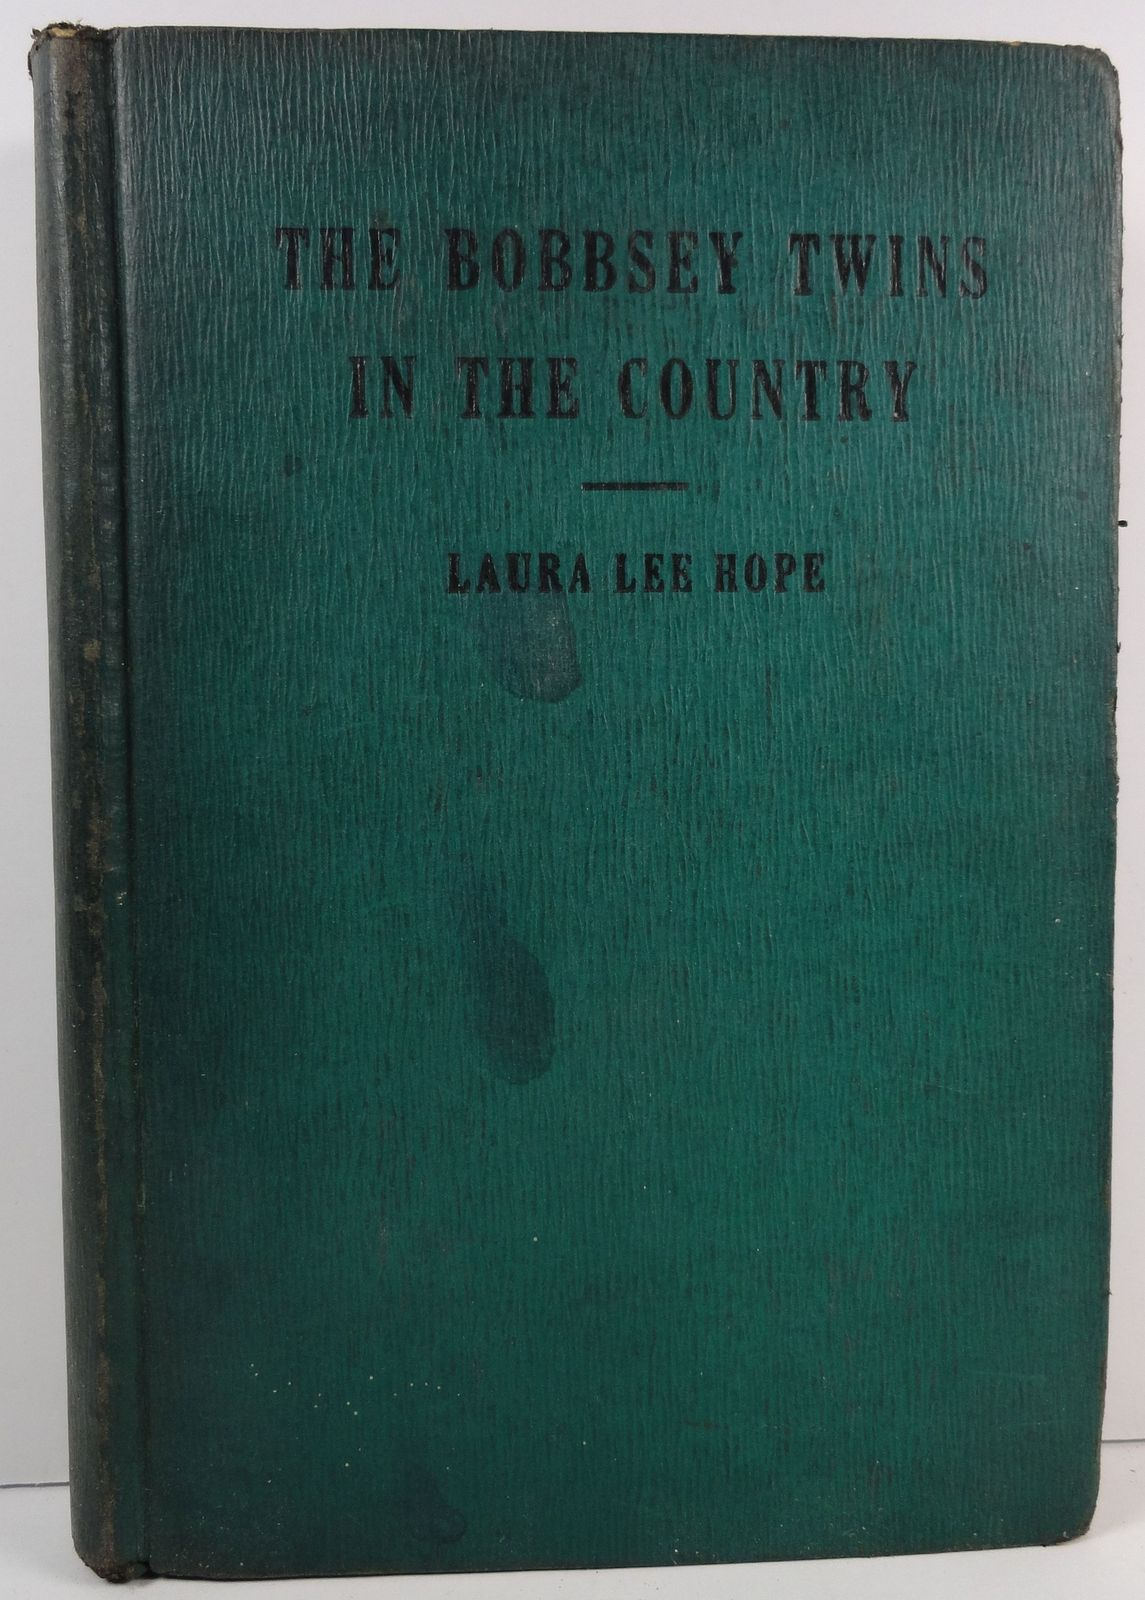 Bobbsey Twins in the Country Laura Lee Hope 1940 Saalfield